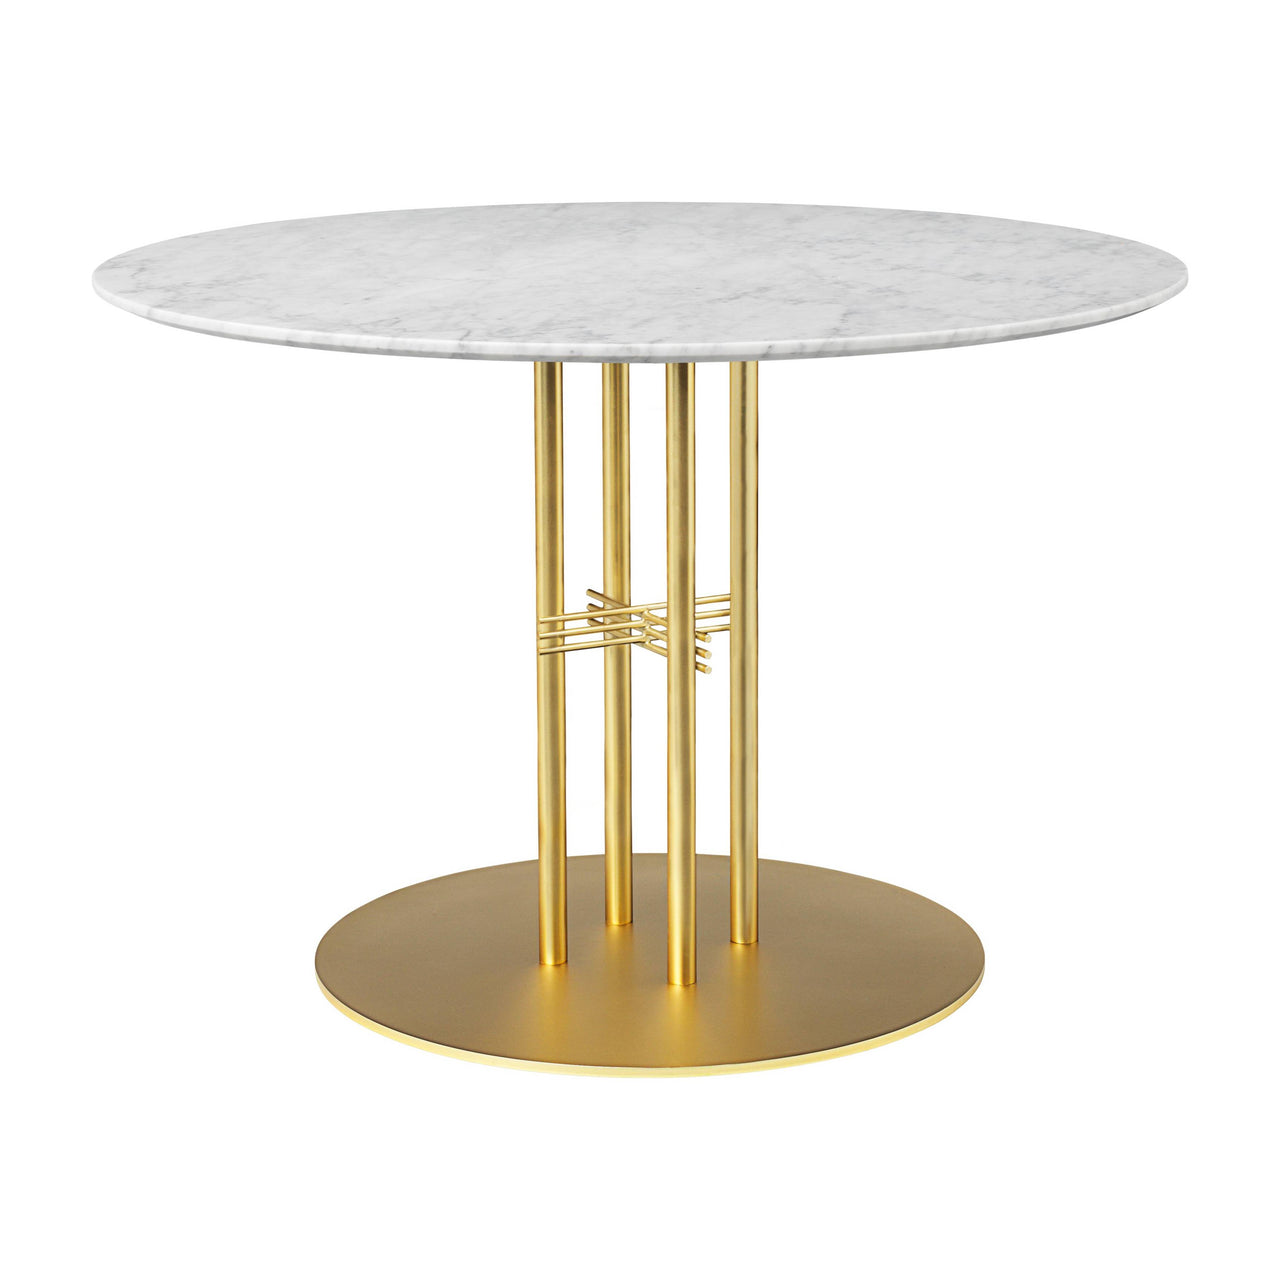 TS Column Dining Table: Medium + Brass Base + White Carrara Marble